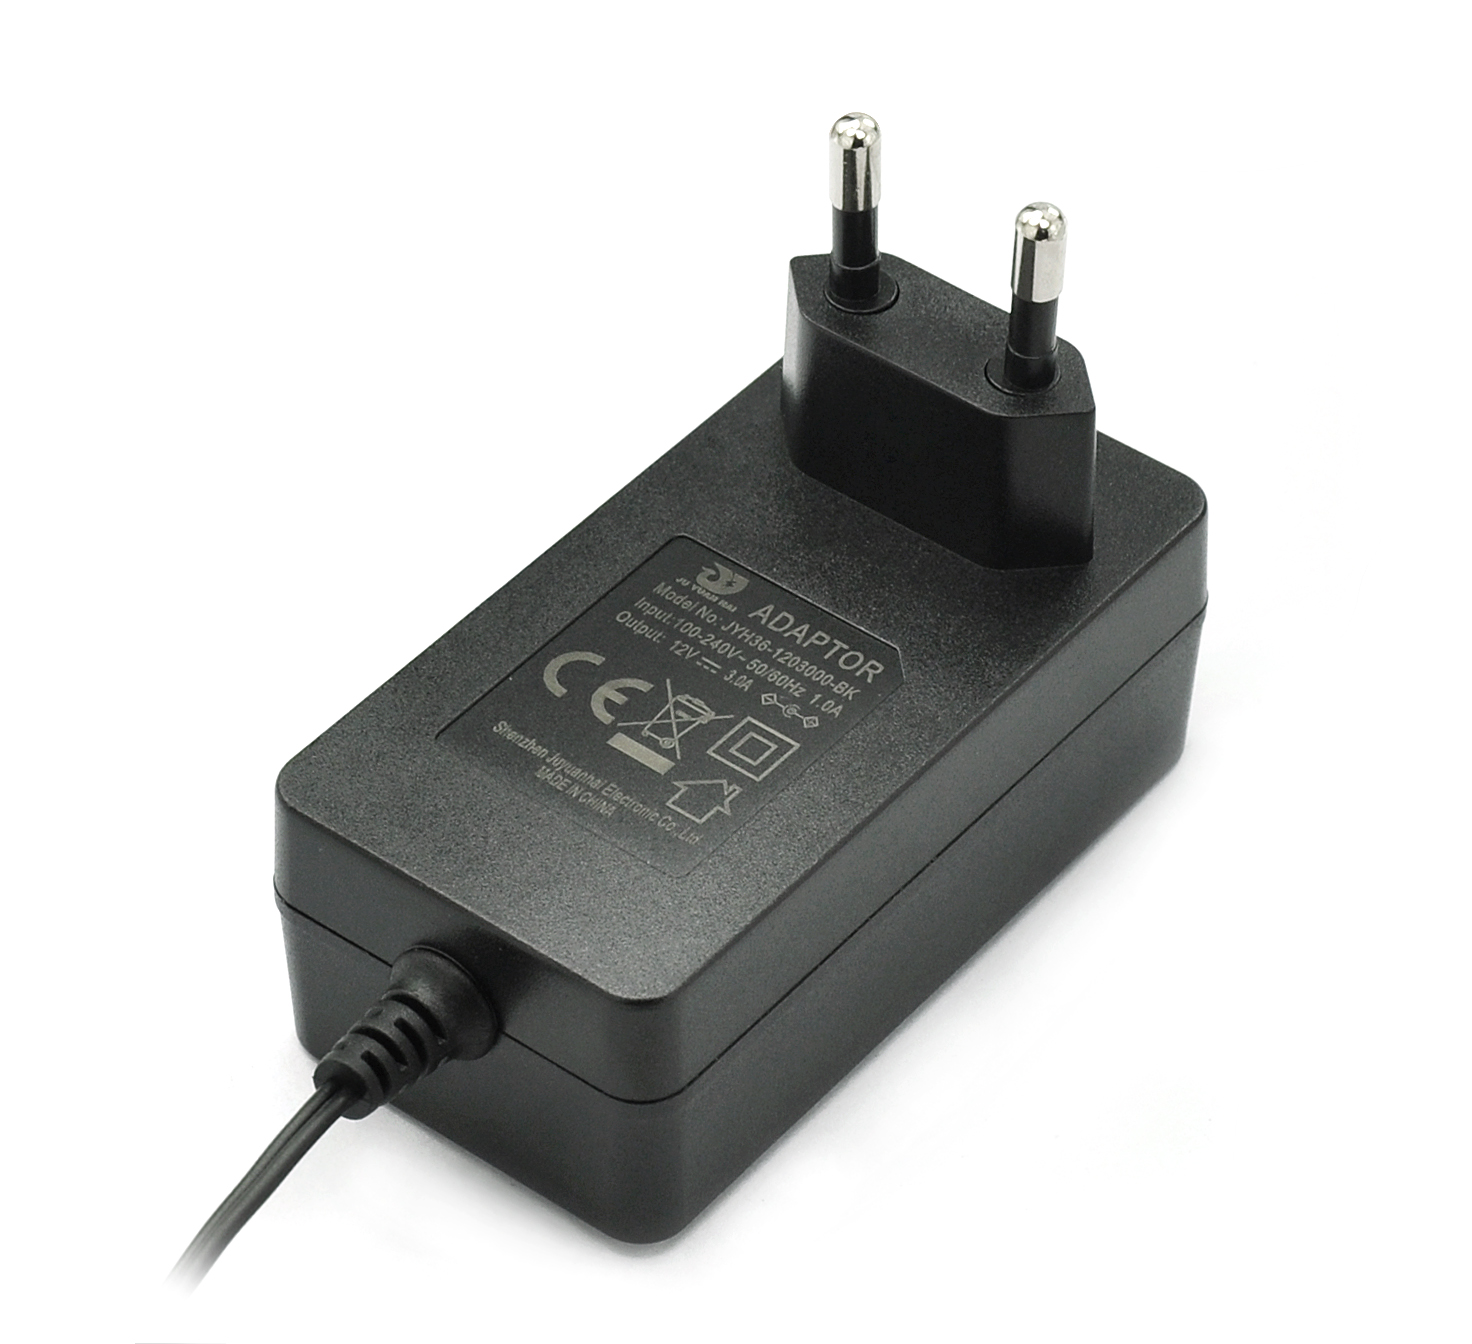 36W Wall Mount Charger 5V 4A12V 3A24V 1.5A (16)